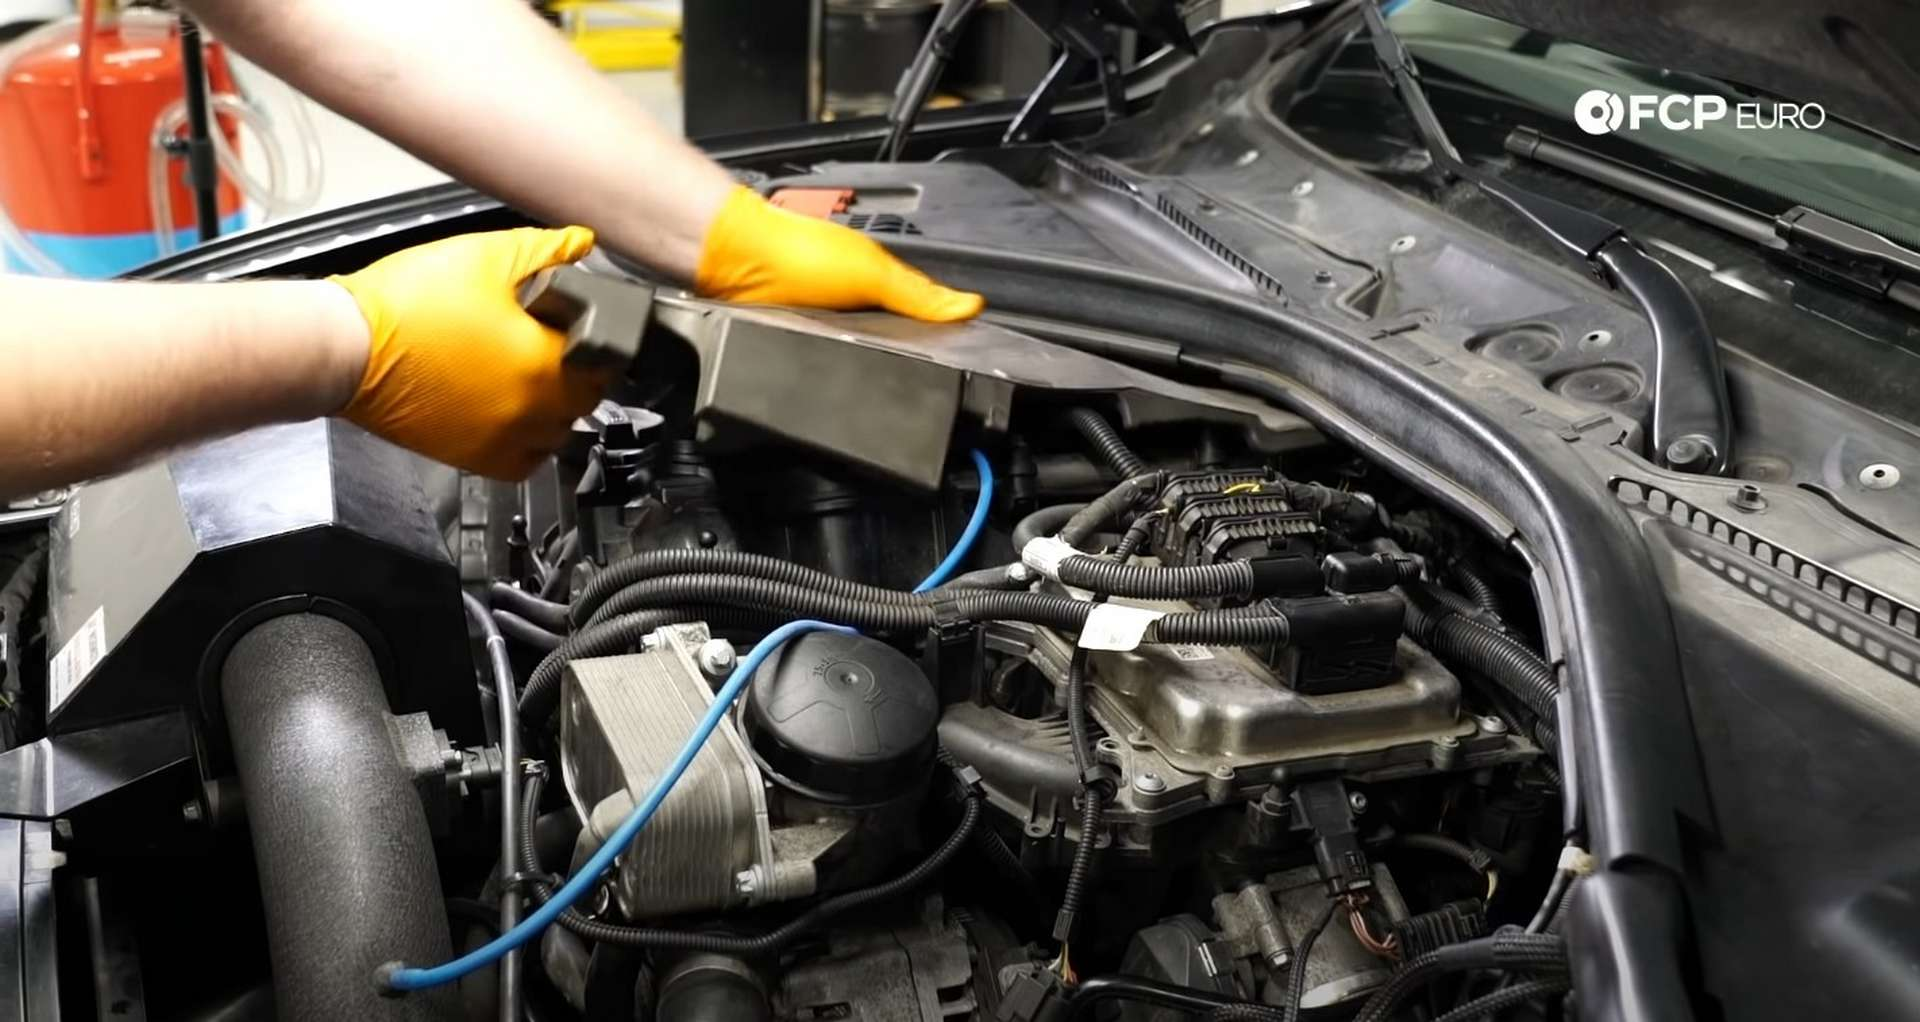 DIY BMW F30 Oil Filter Housing Gasket Replacement fitting the acoustic insulation to the valve cover